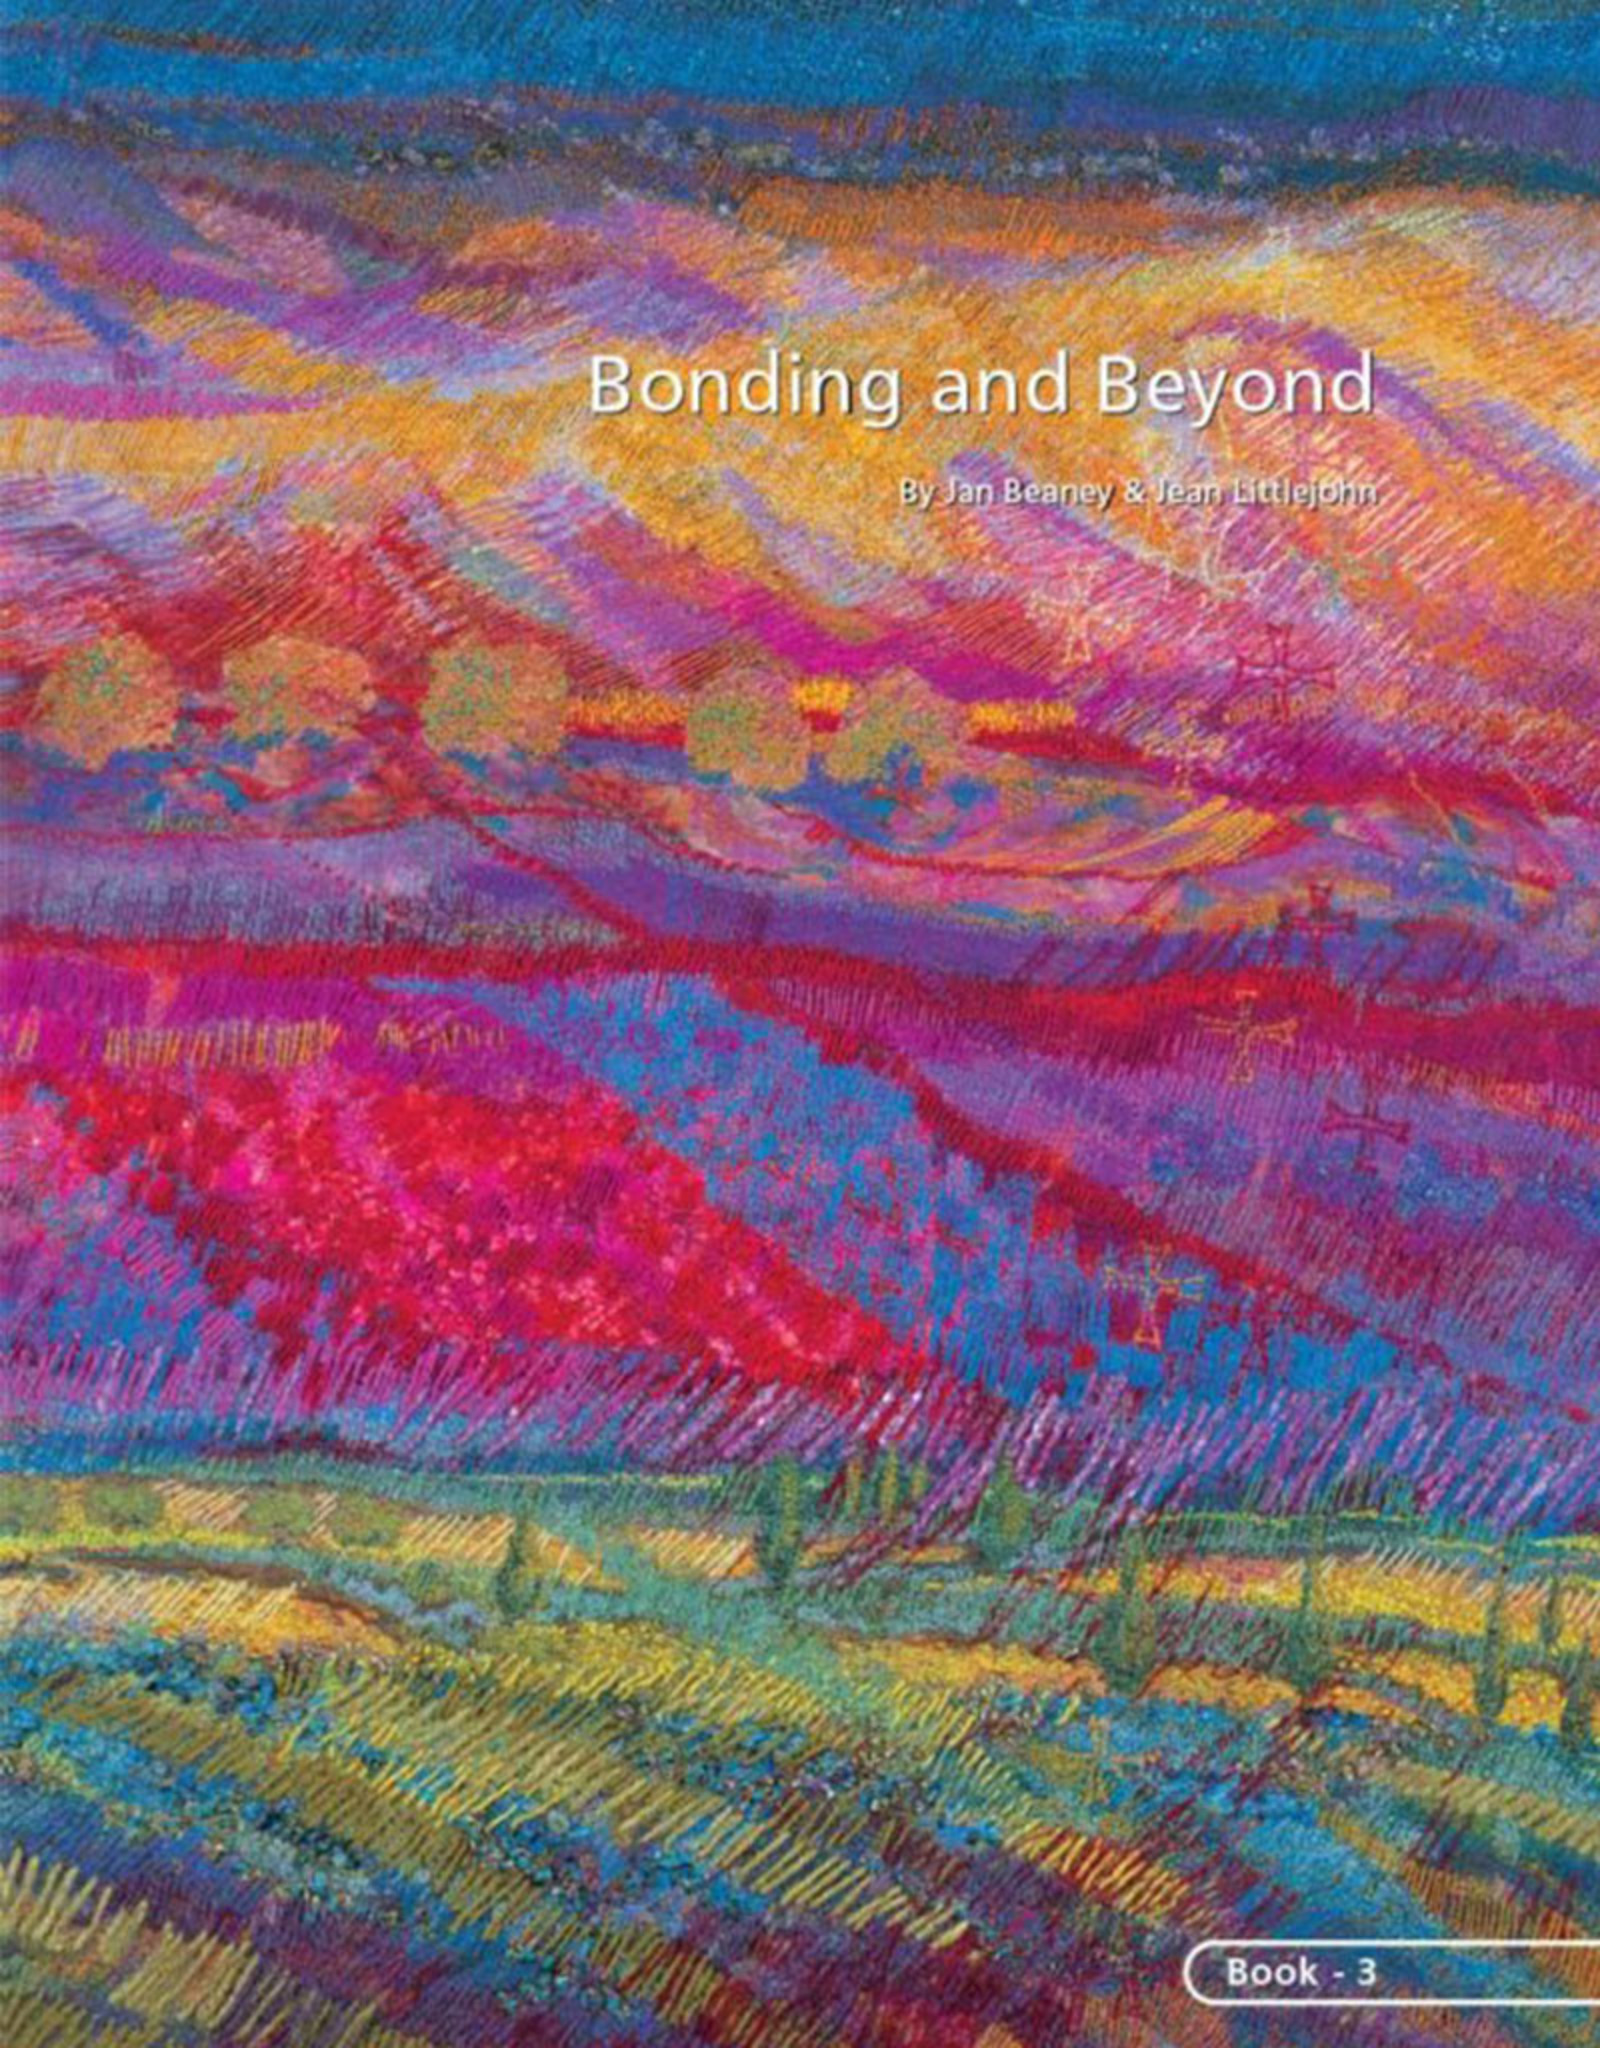 Bonding and Beyond / Jan Beaney & Jean Littlejohn